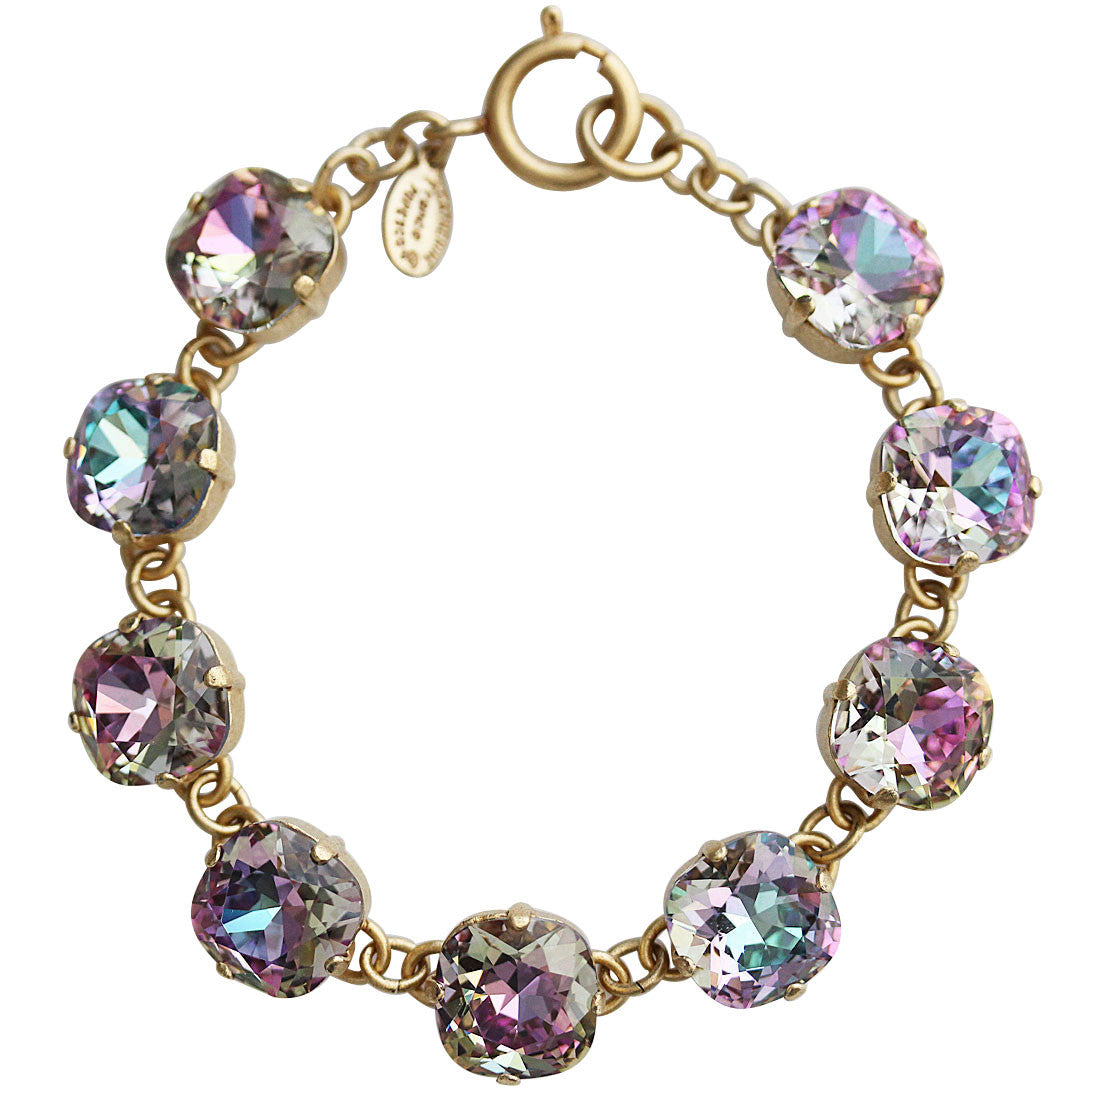 "Catherine Popesco 14k Gold Plated Crystal Round Bracelet, 7.25"" 1696G Light Vitrail (Frozen) * Limited Edition *"